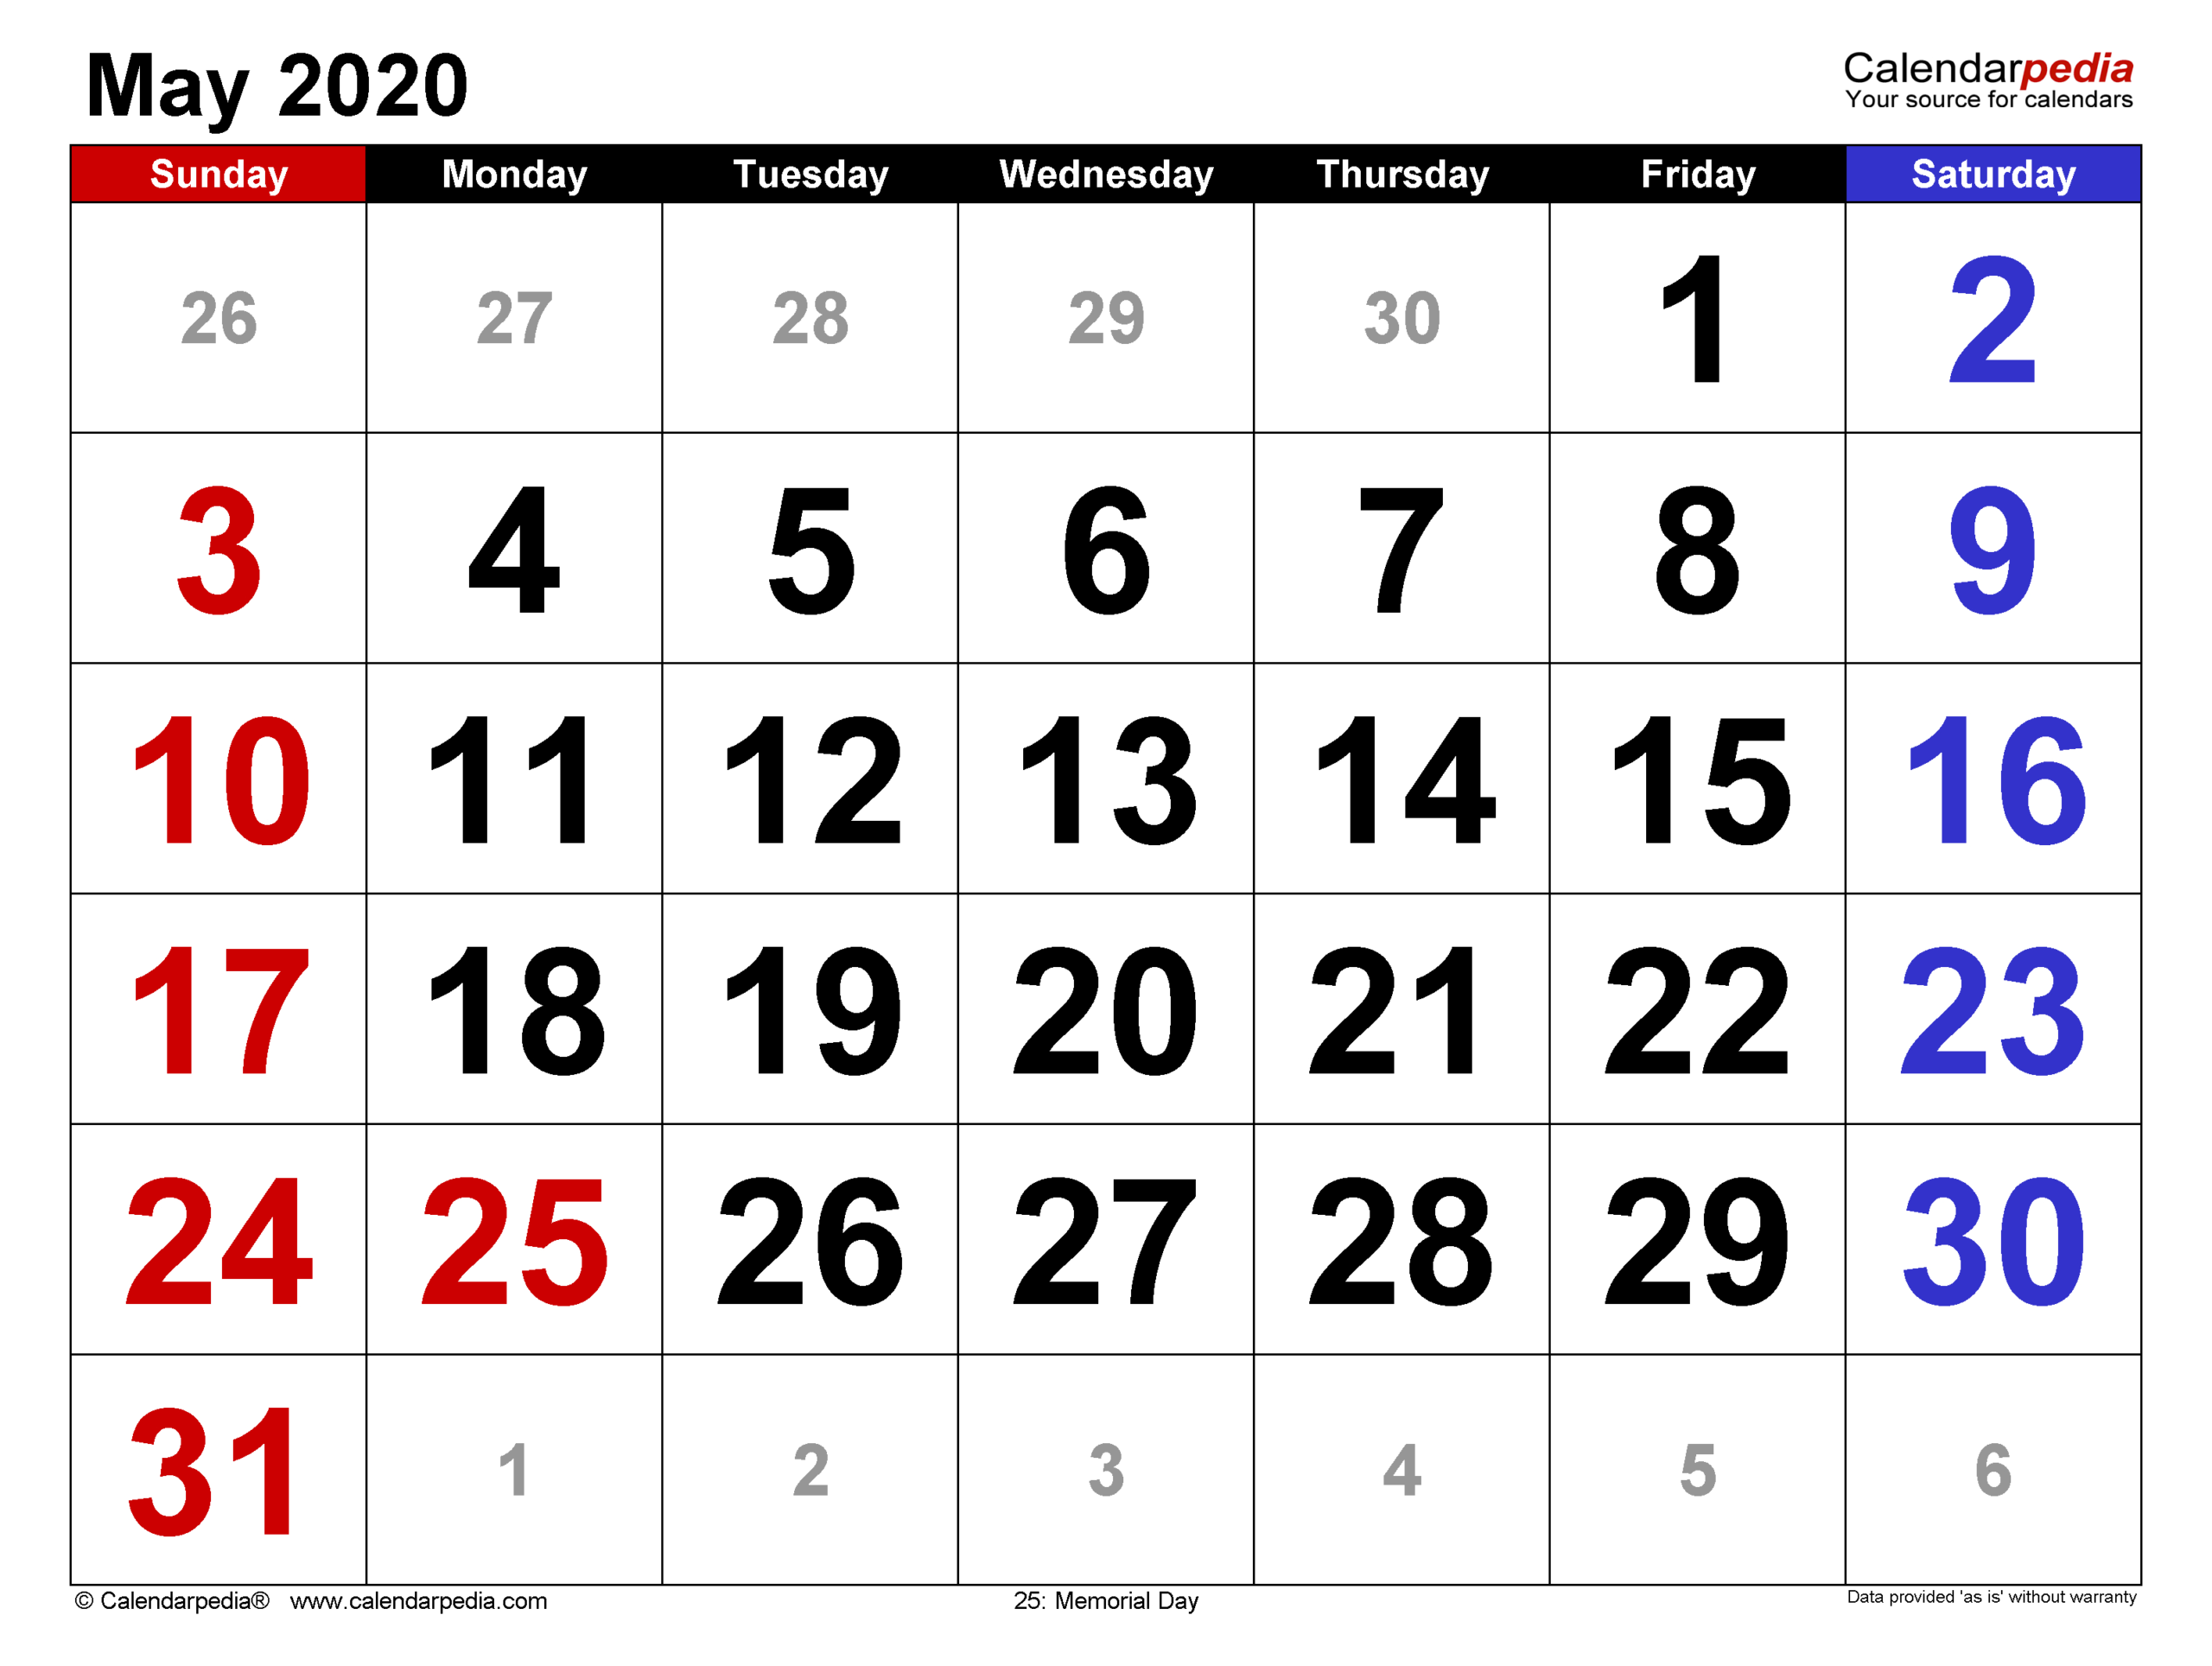 May 2020 Calendar | Templates For Word, Excel And Pdf pertaining to Large Number Calendar